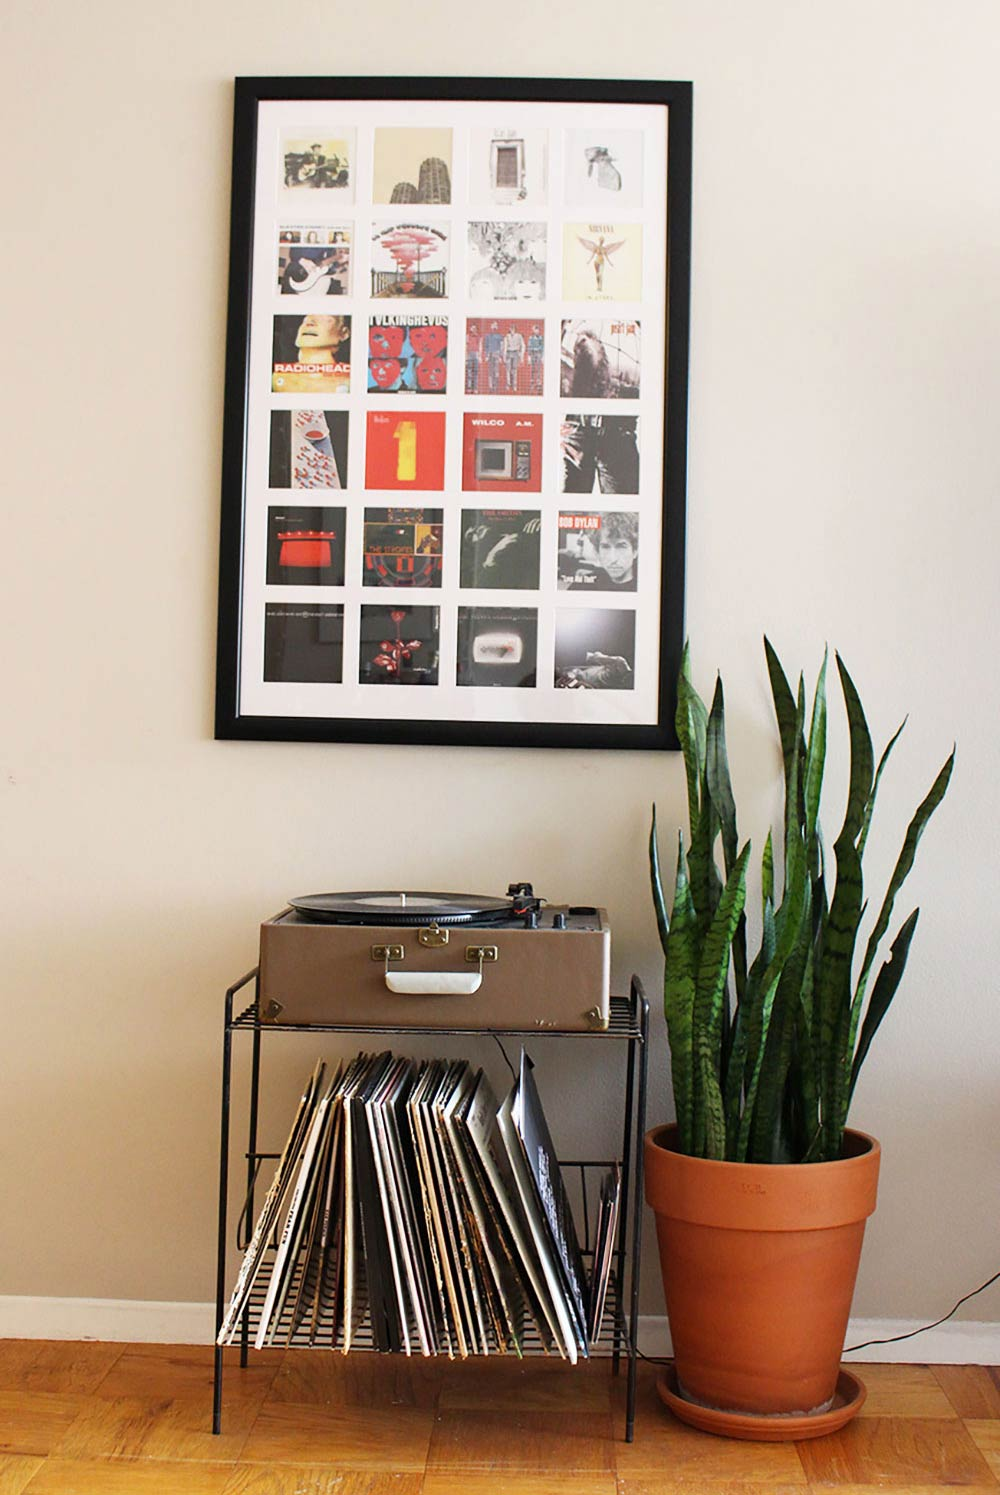 Simply Gifted Top 5 Posts of 2015:  No. 3 CD Cover Wall Art